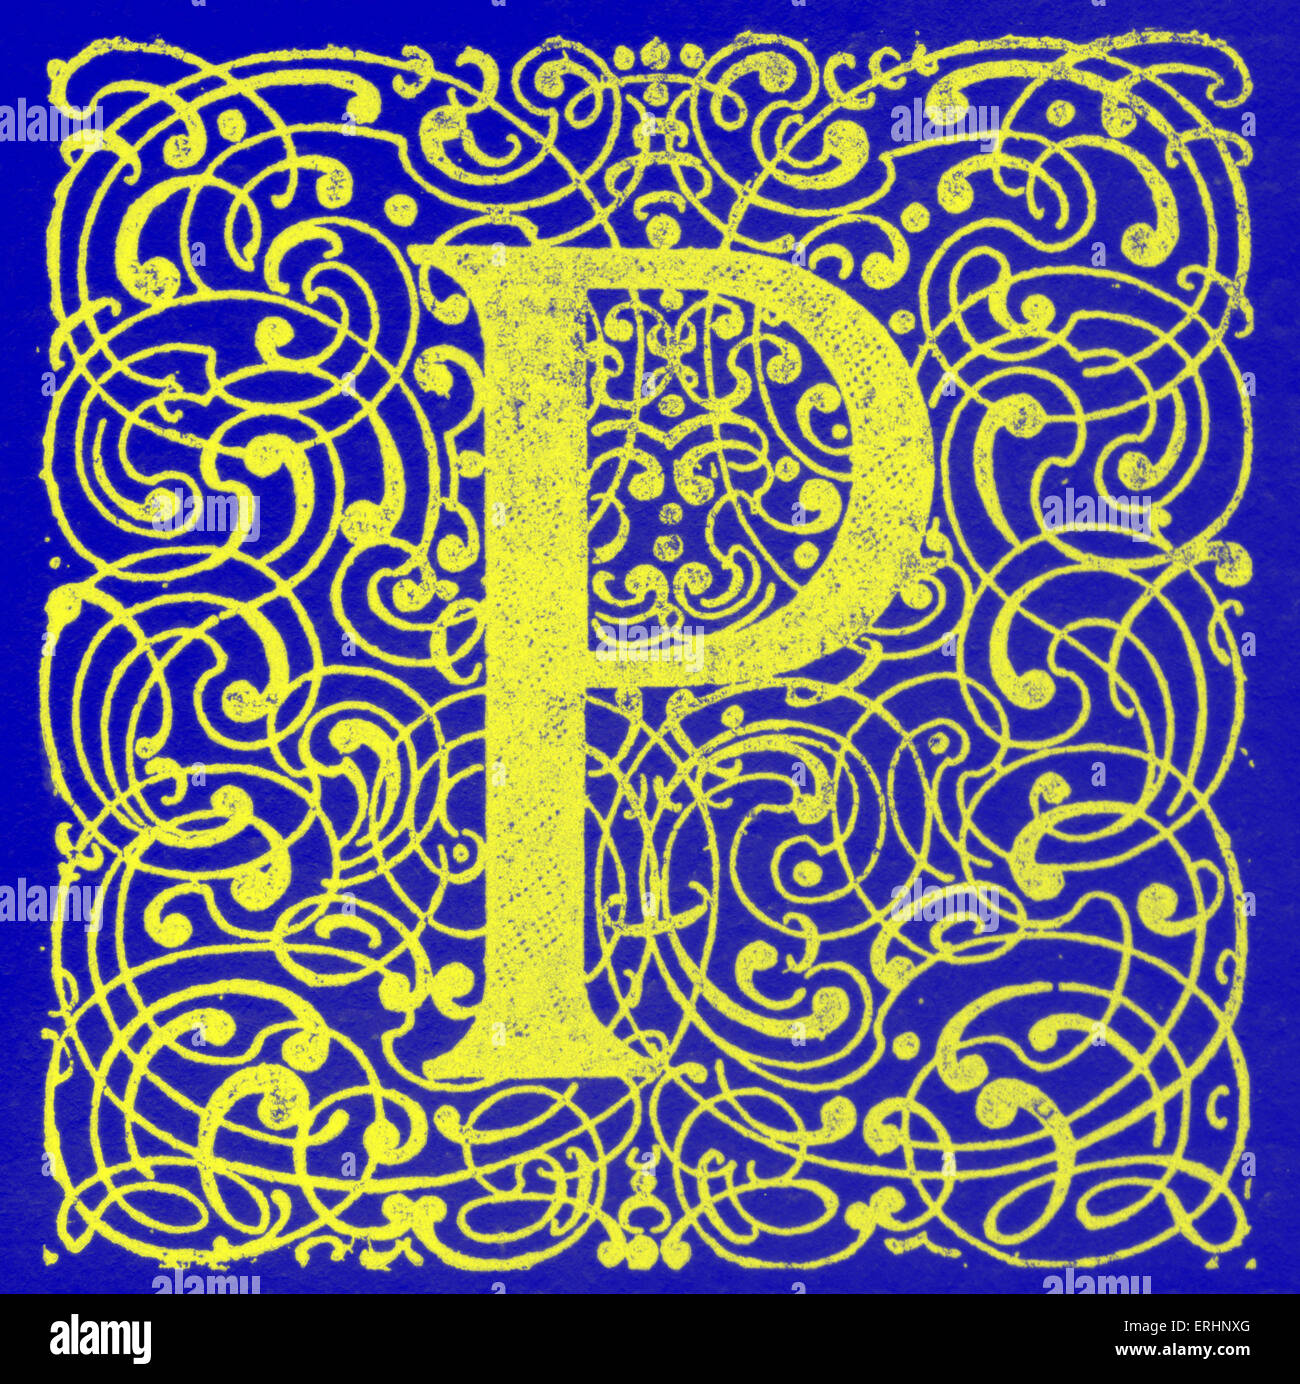 Illuminated Letter P Stock Photo Royalty Free Image